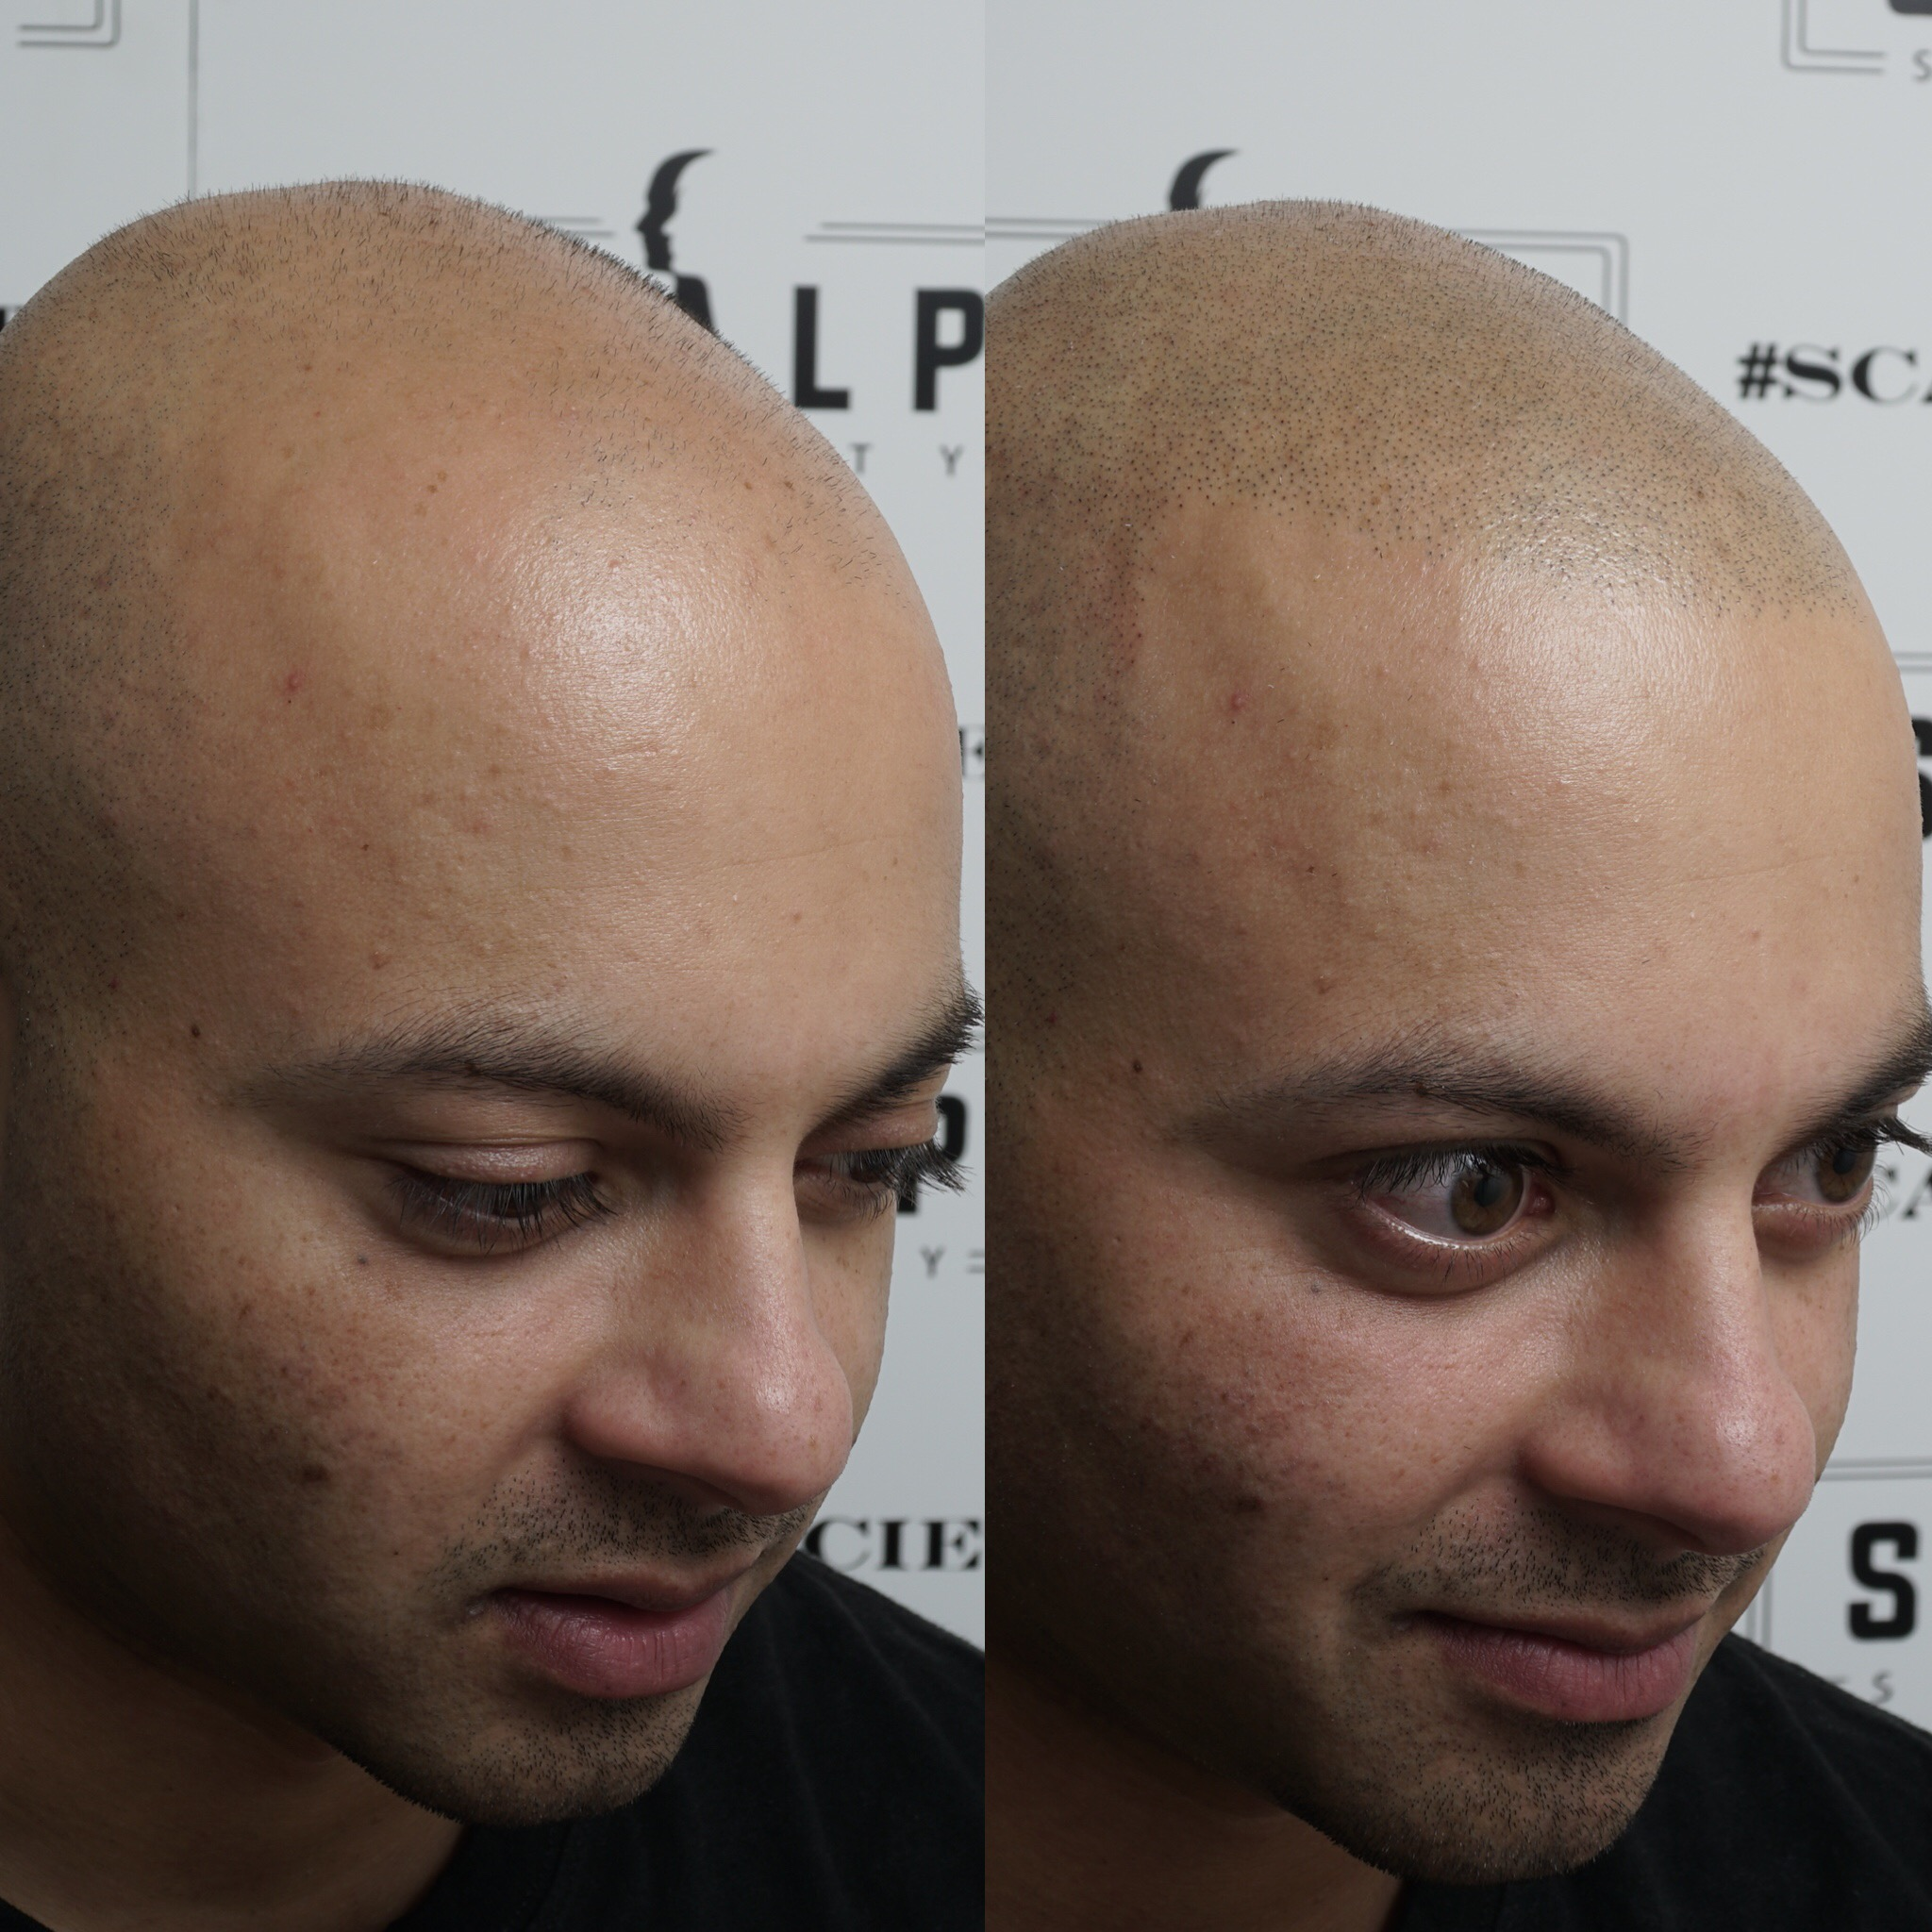 Micropigmentation does wonders for a persons age, confidence and looks. This is a perfect example that it shaves off years!